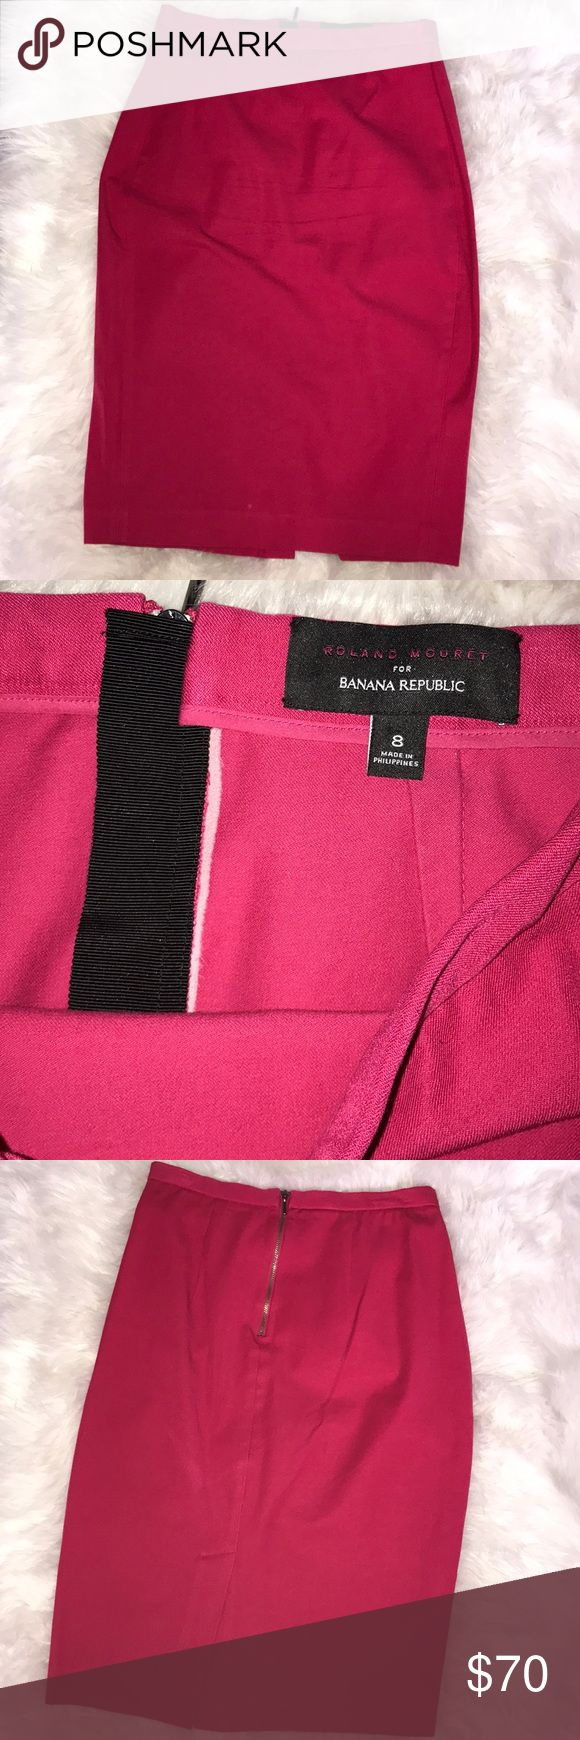 Banana Republic Hot Pink Pencil Skirt Roland Mouret for Banana Republic Hop Pink pencil Skirt. Perfect for work . Pre owned in excellent condition.  Size 8 | Banana Republic Skirts Pencil